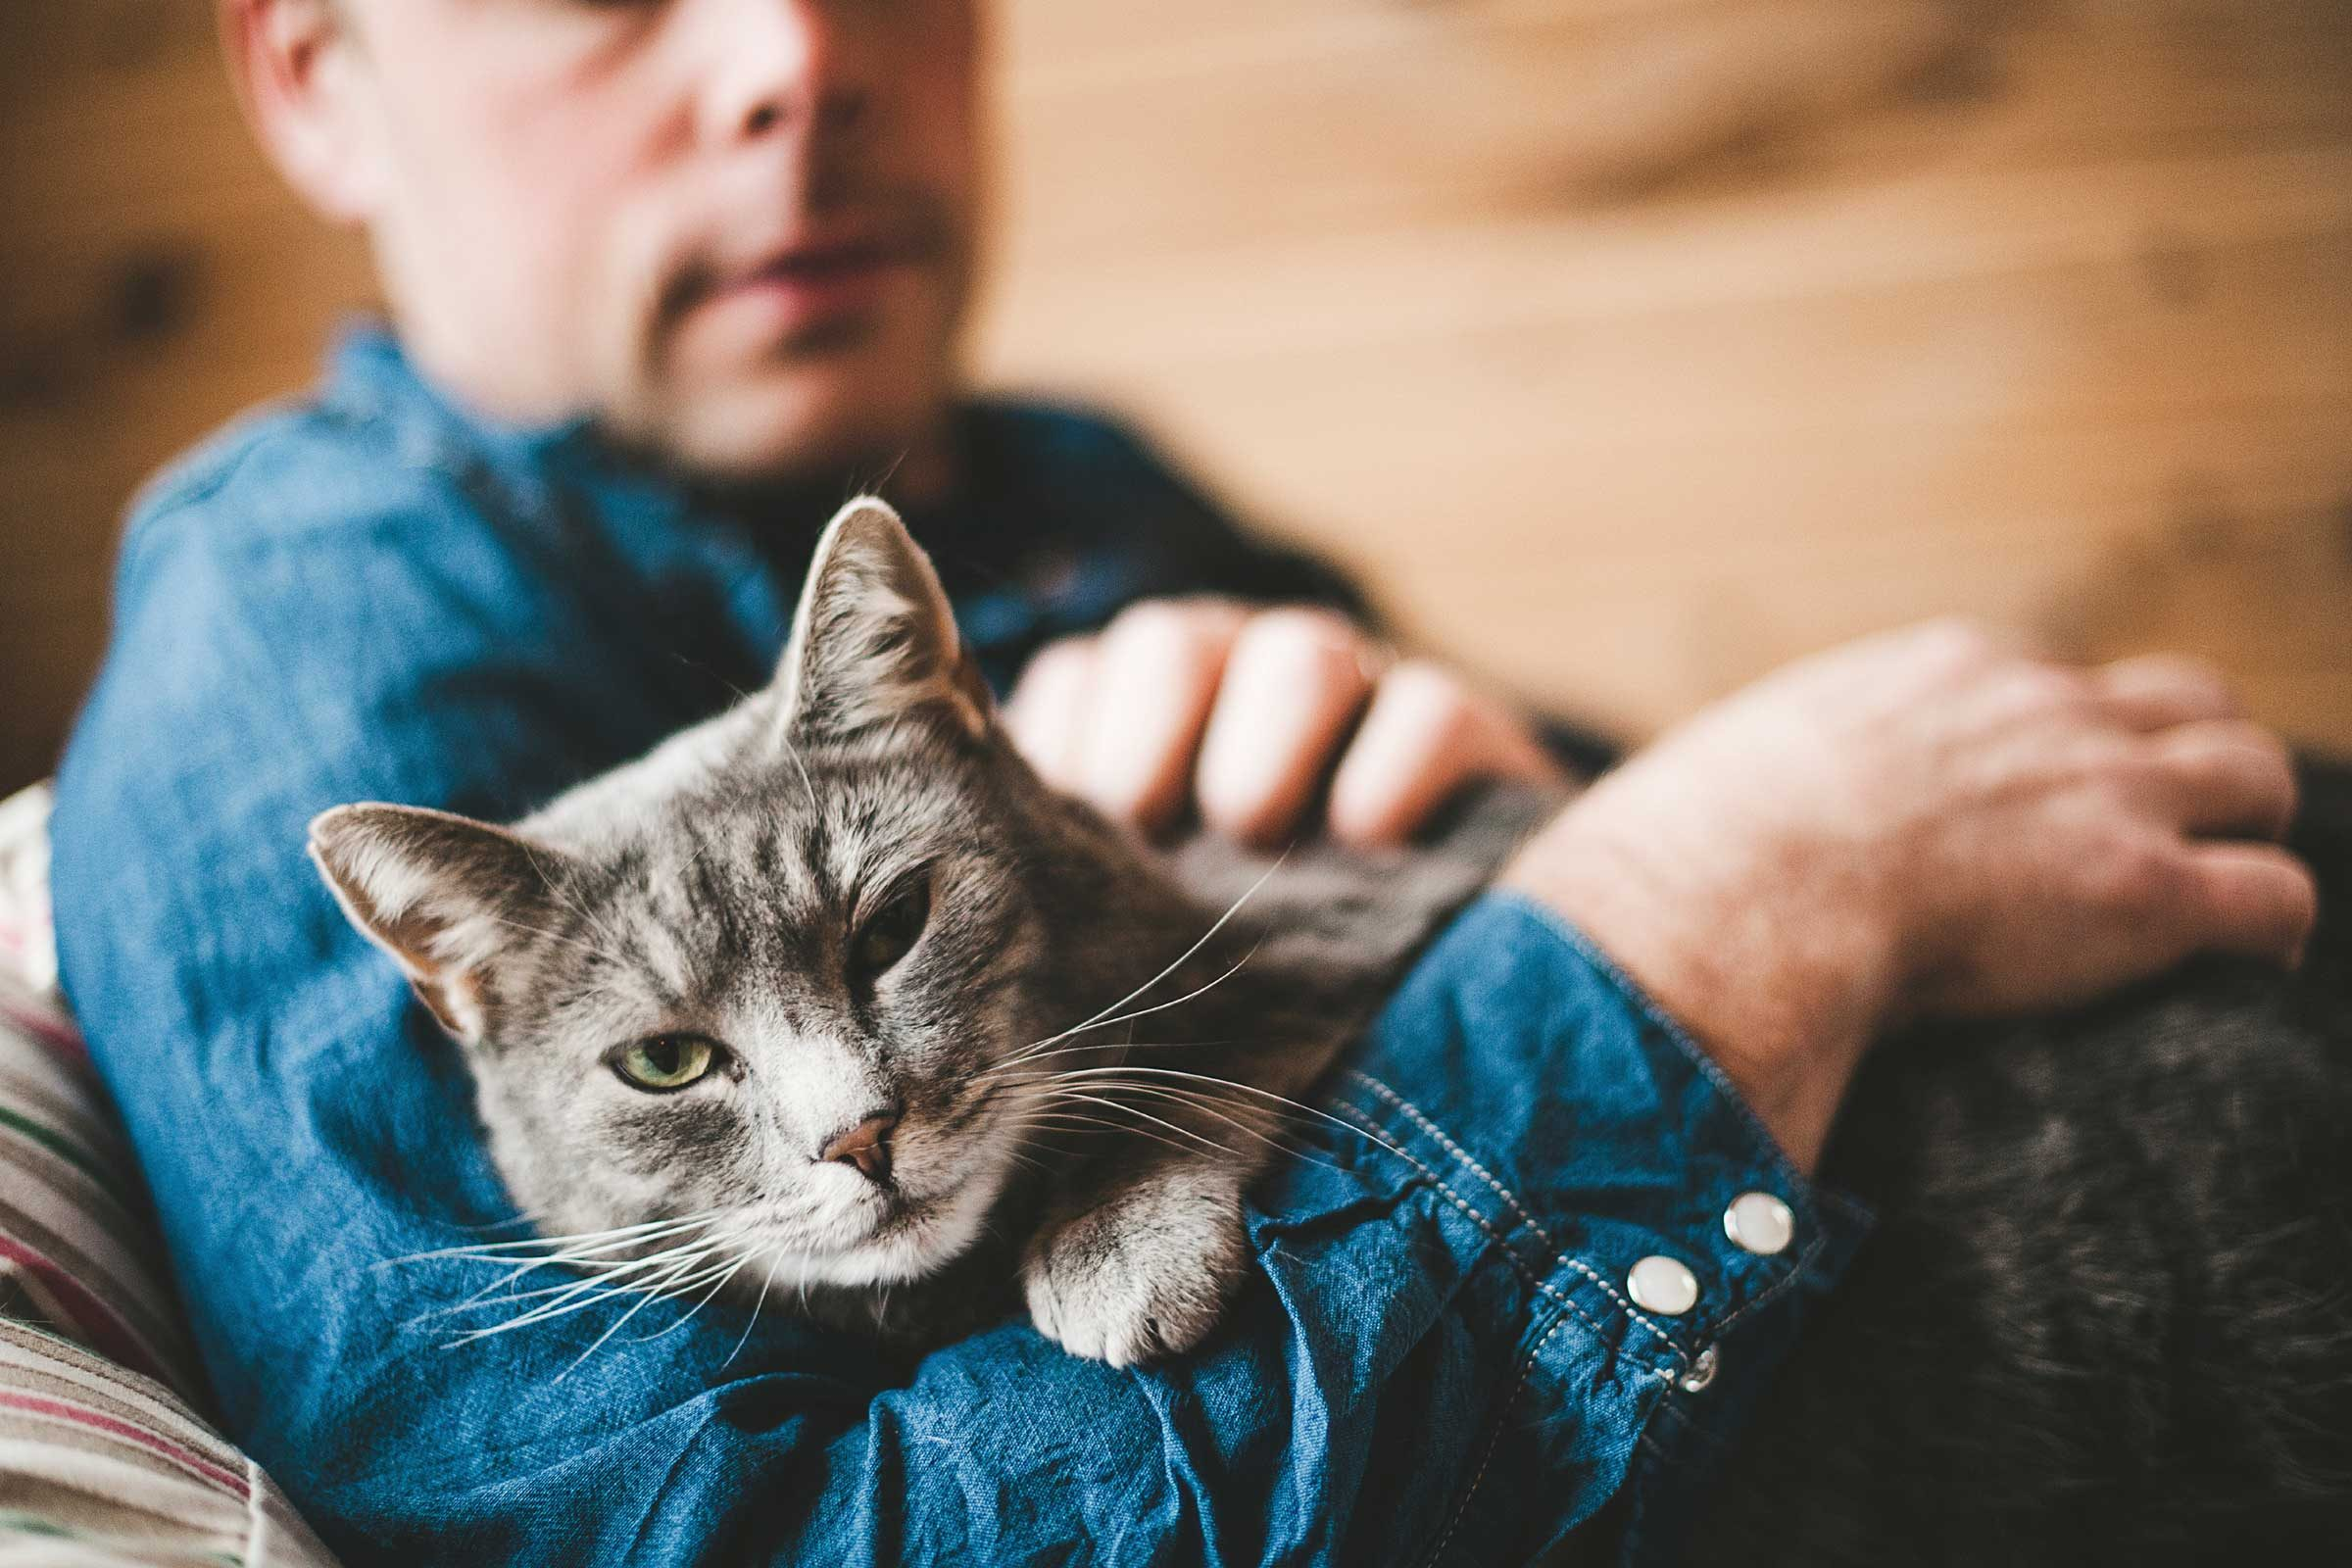 Many cats like to live according to the 'Seinfeld' mantra of 'no hugging, no learning'